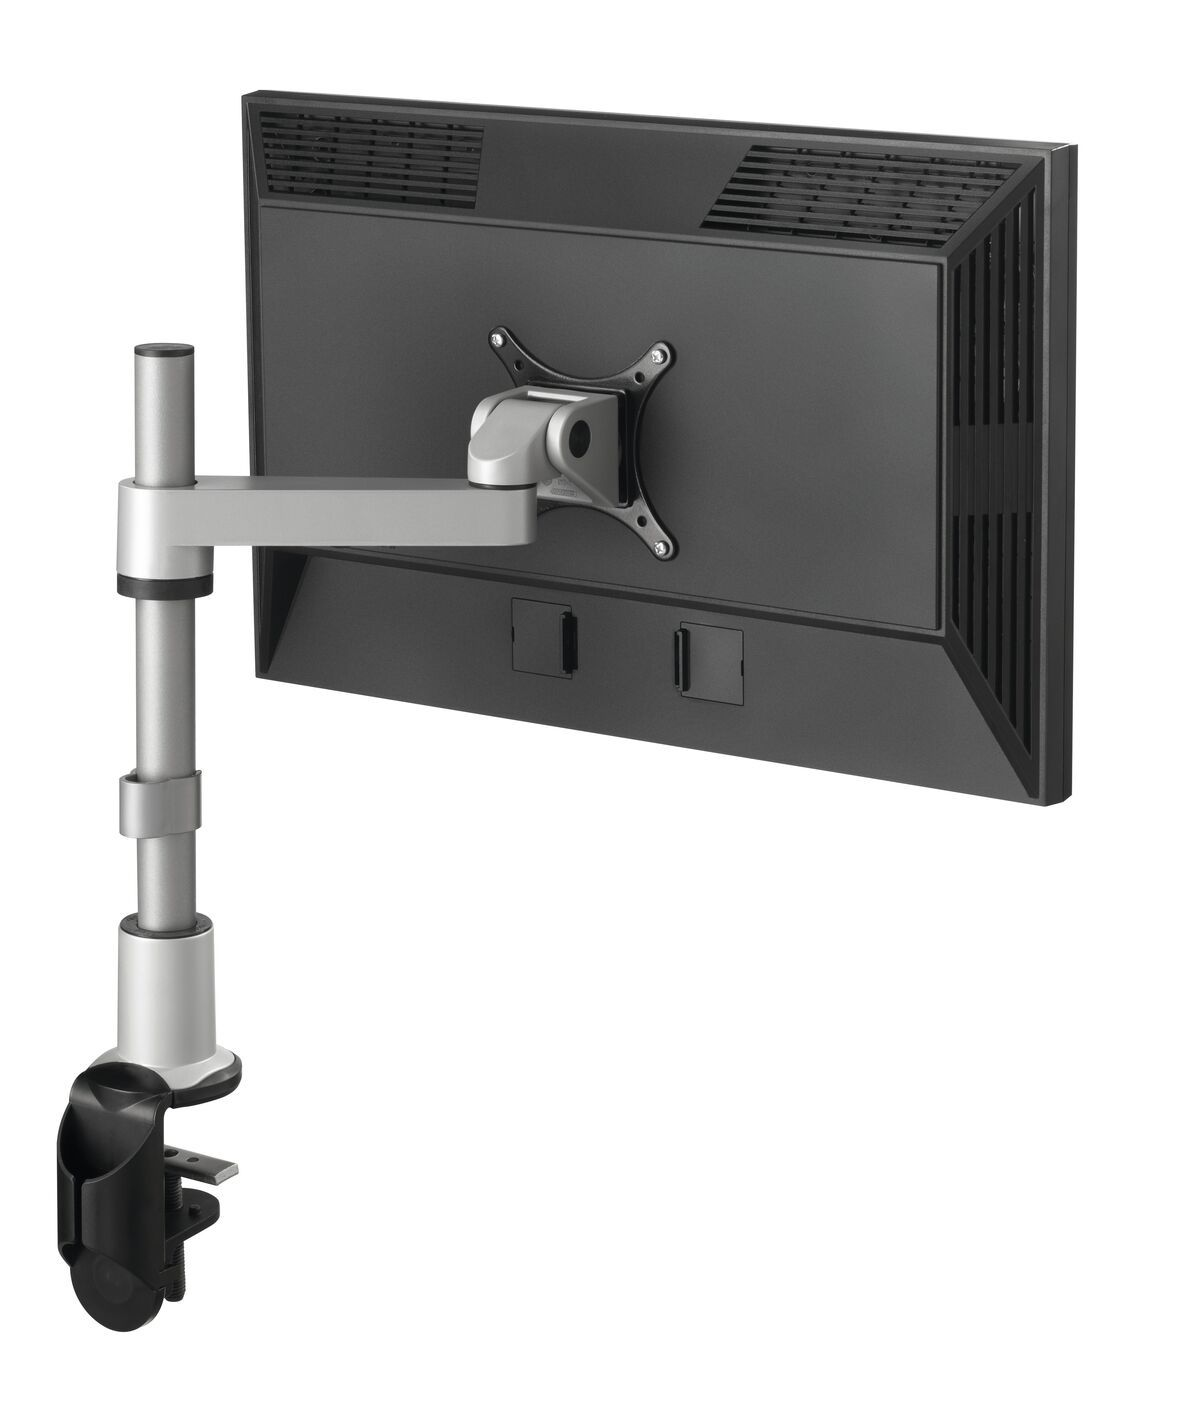 Vogel's PFD 8522 Monitor mount static - For monitors up to 13 kg - Ideally suited for Gaming and (Home) Office - Application